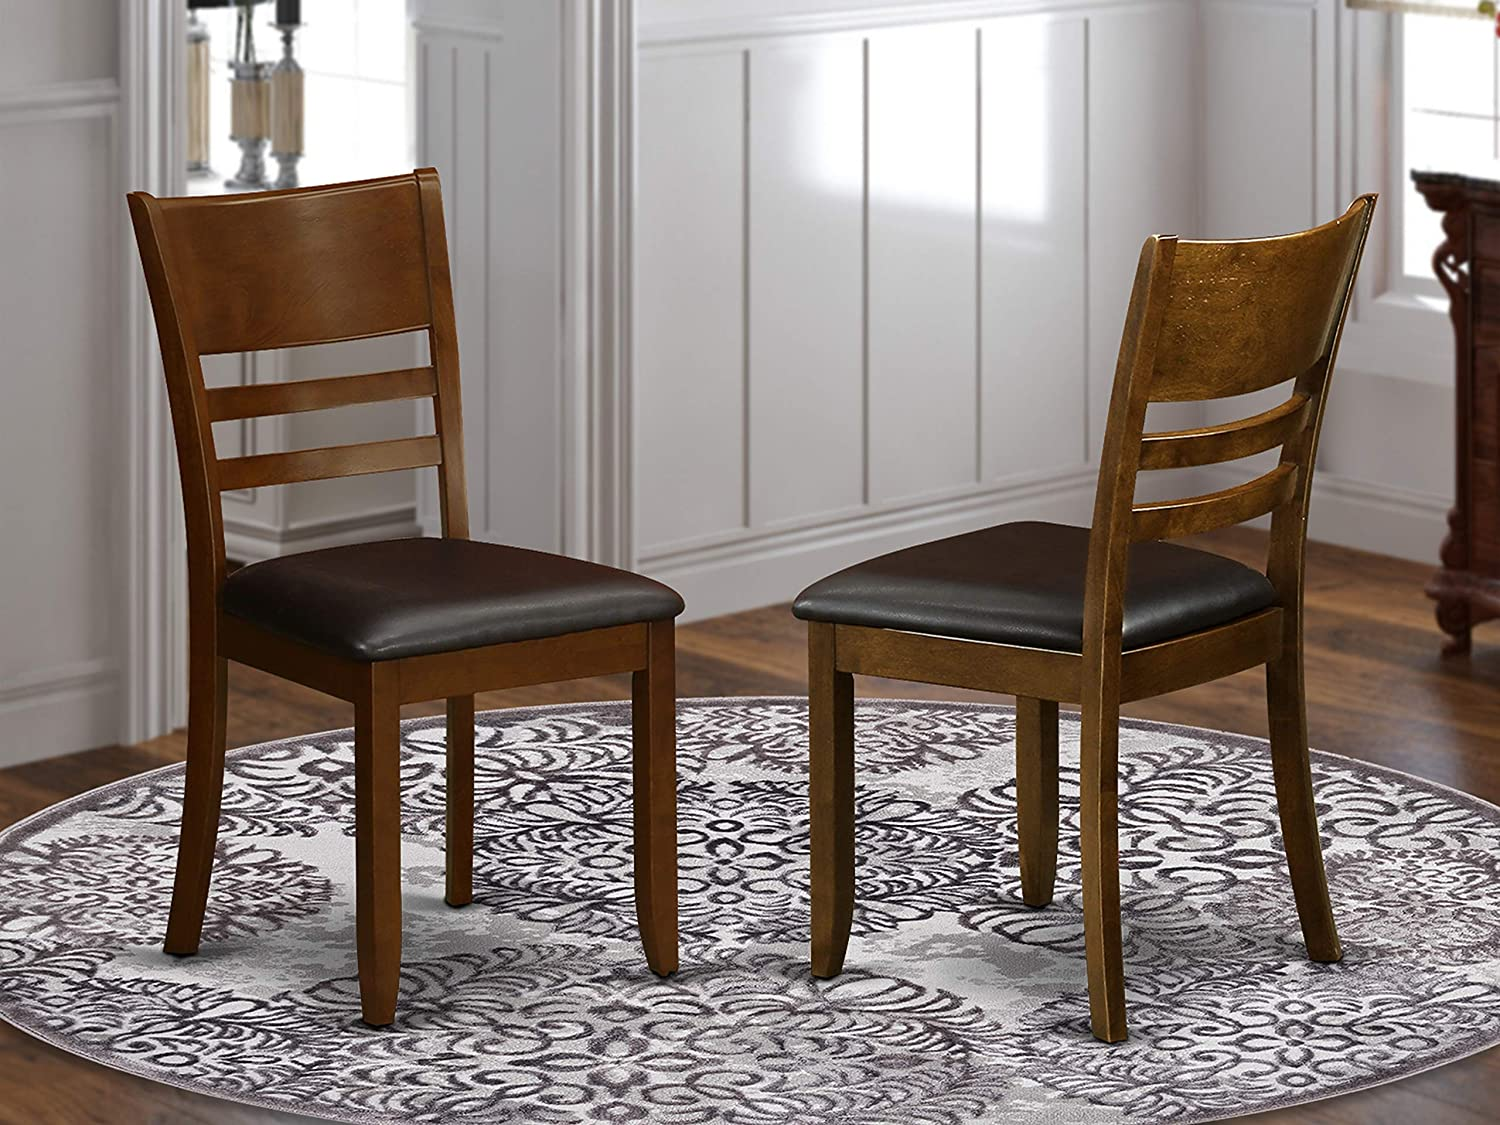 Lynfield Dining Room Chair with Faux Leather Upholstered Seat in Espresso Finish